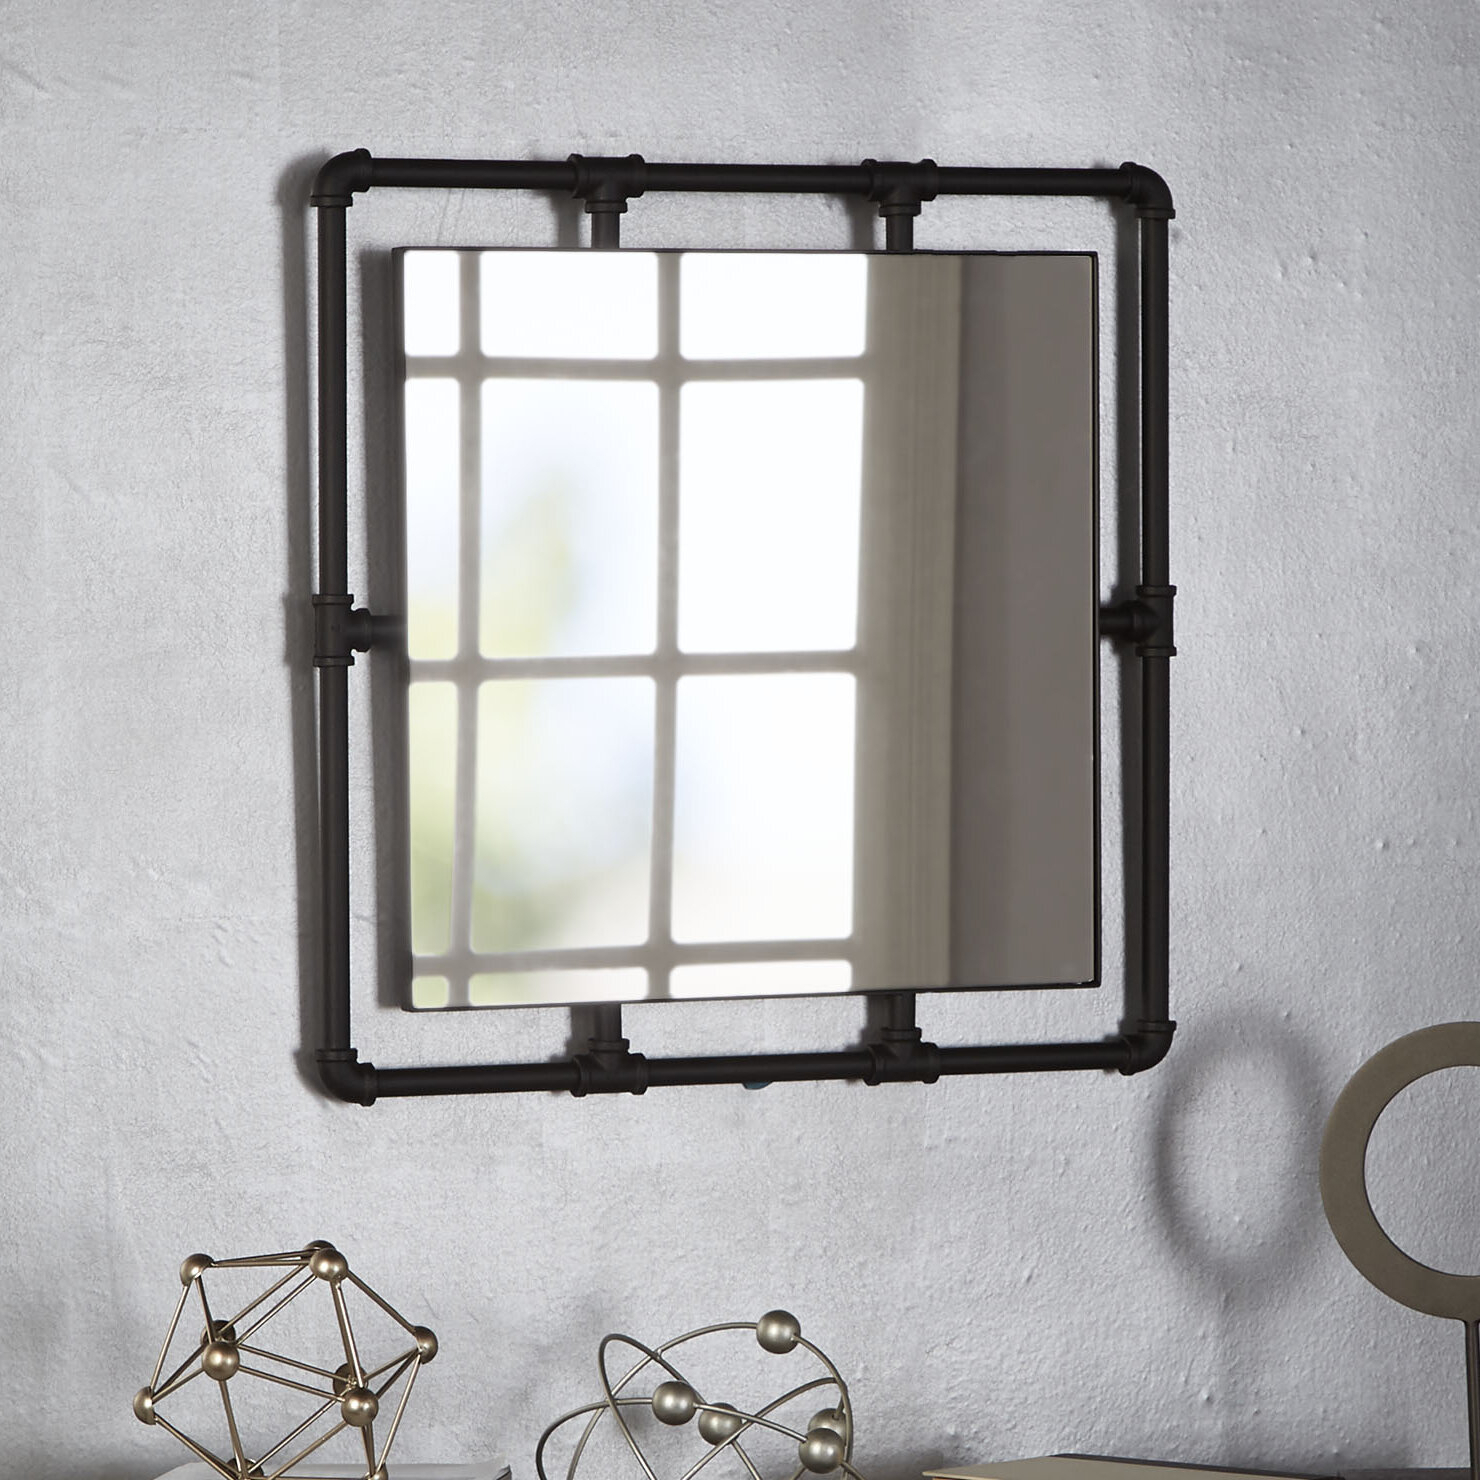 Seltzer Industrial Square Pipe Fitting Accent Mirror Inside Austin Industrial Accent Mirrors (Image 20 of 30)